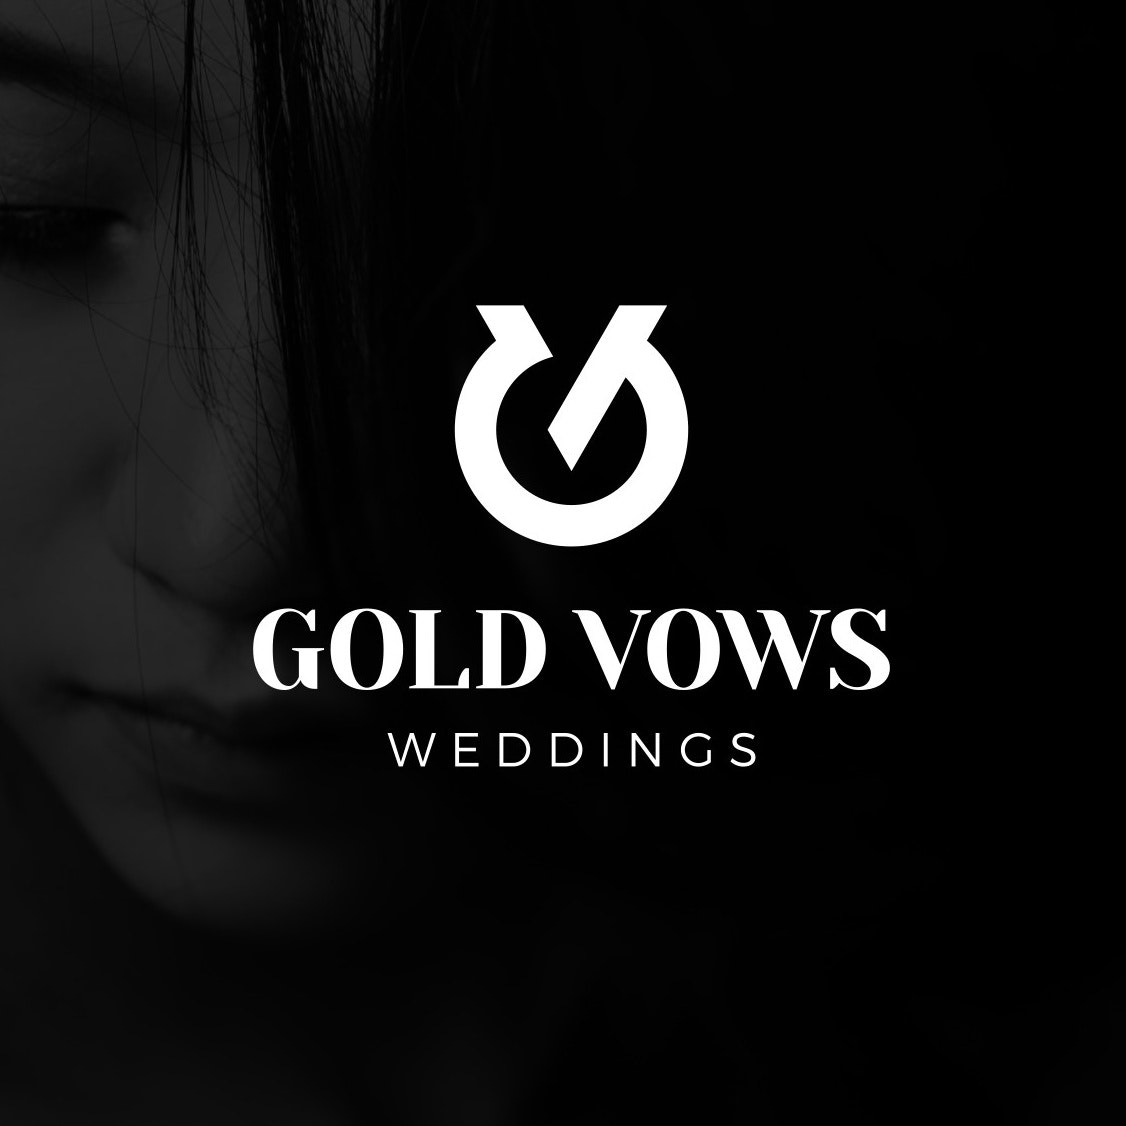 Modern wedding logo